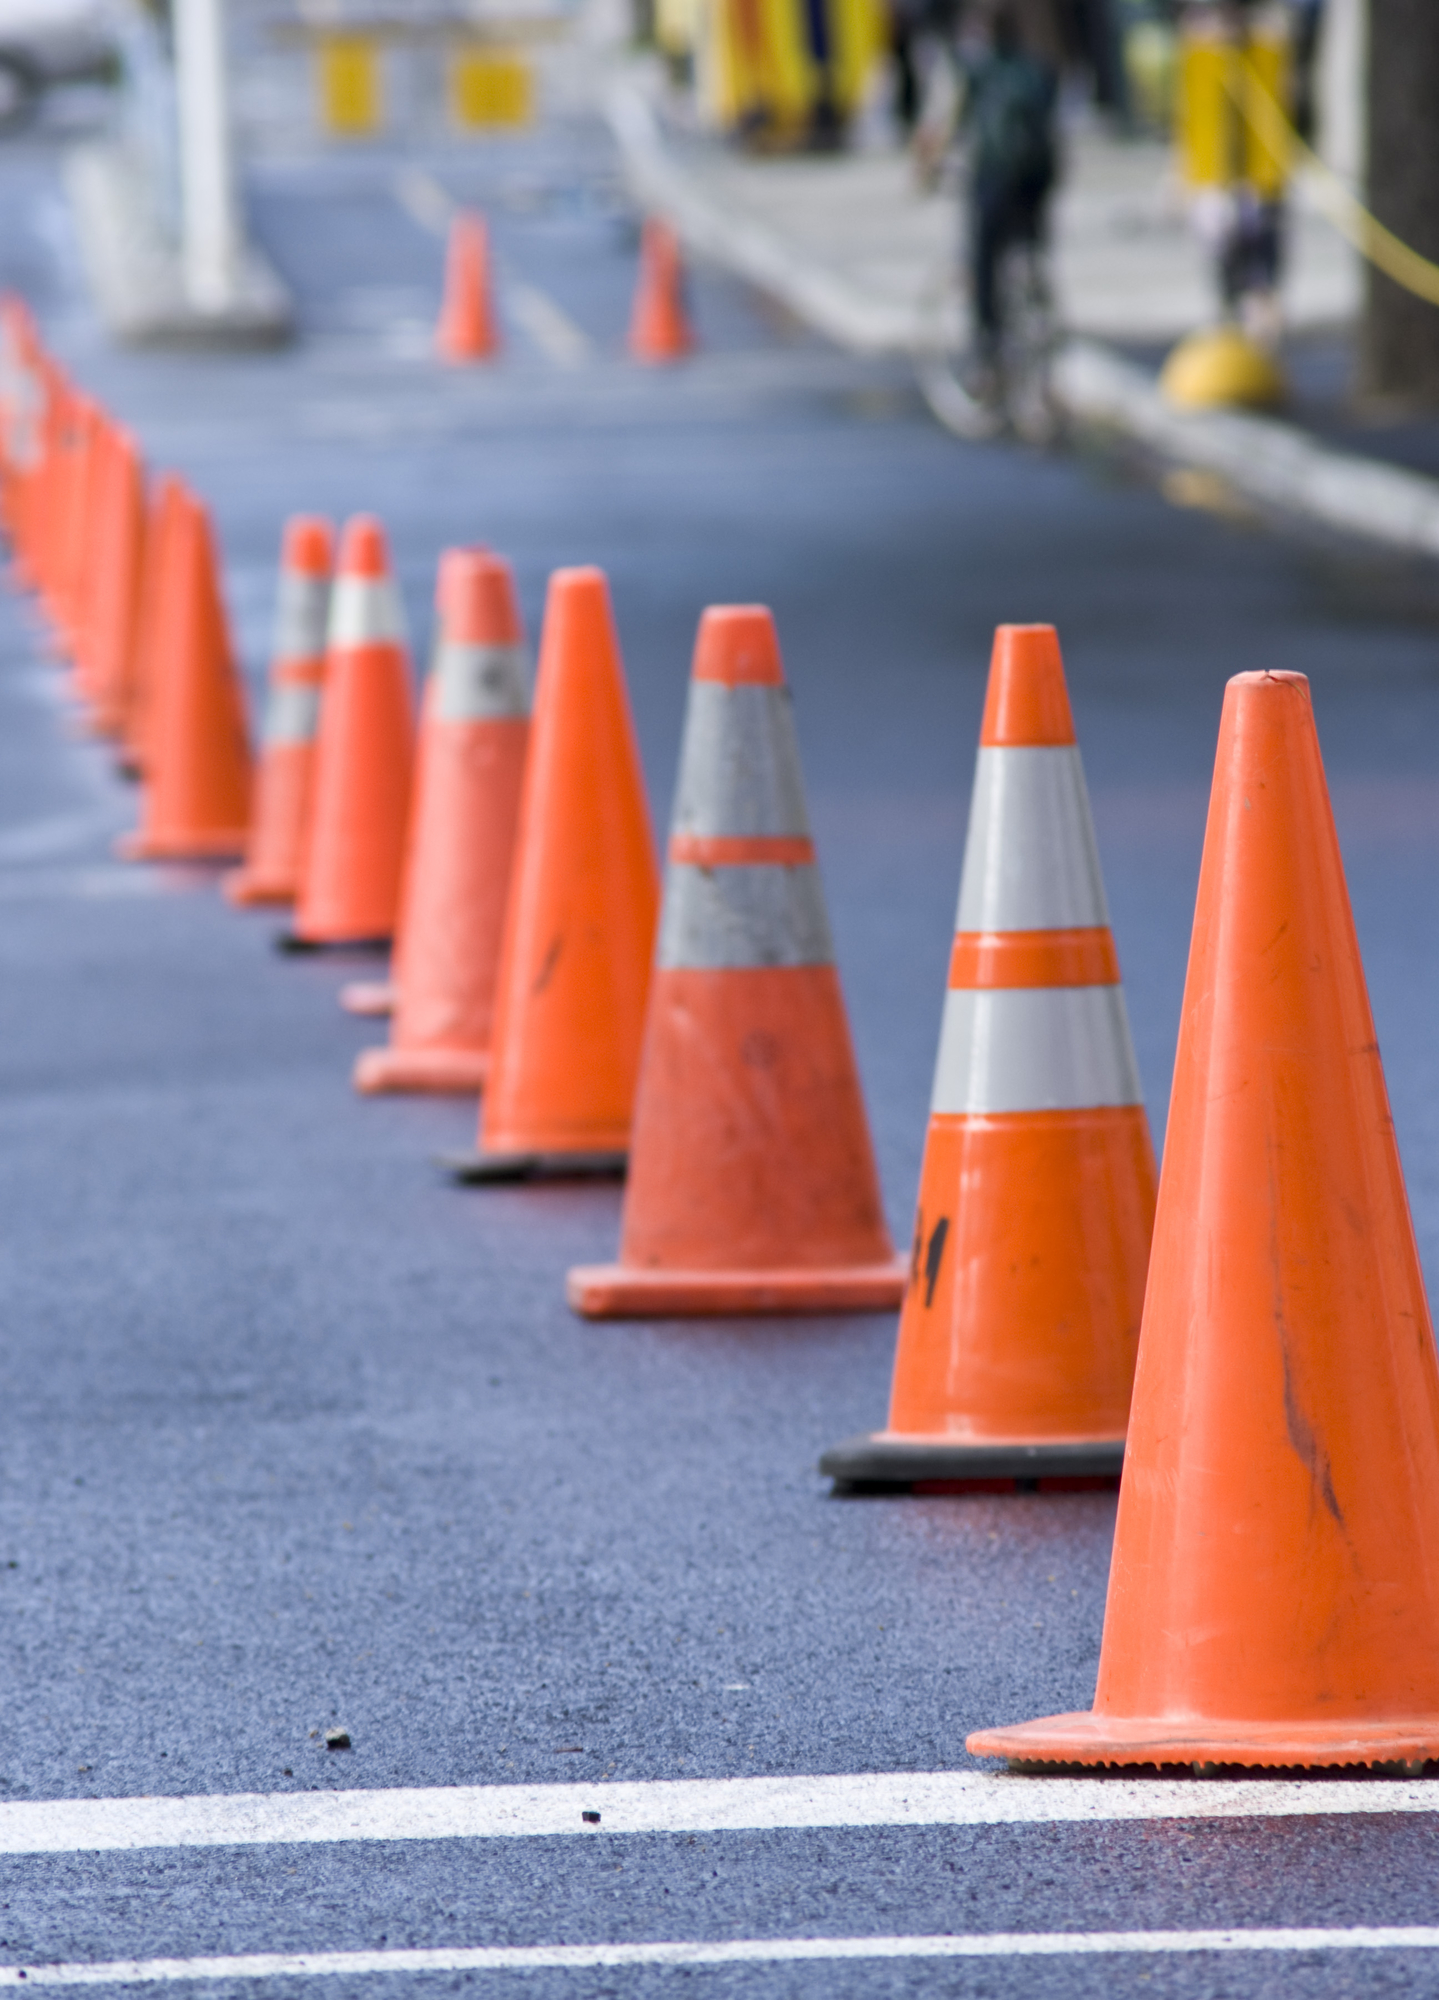 Traffic to be Impacted in Three Locations Starting the Week of Oct. 15